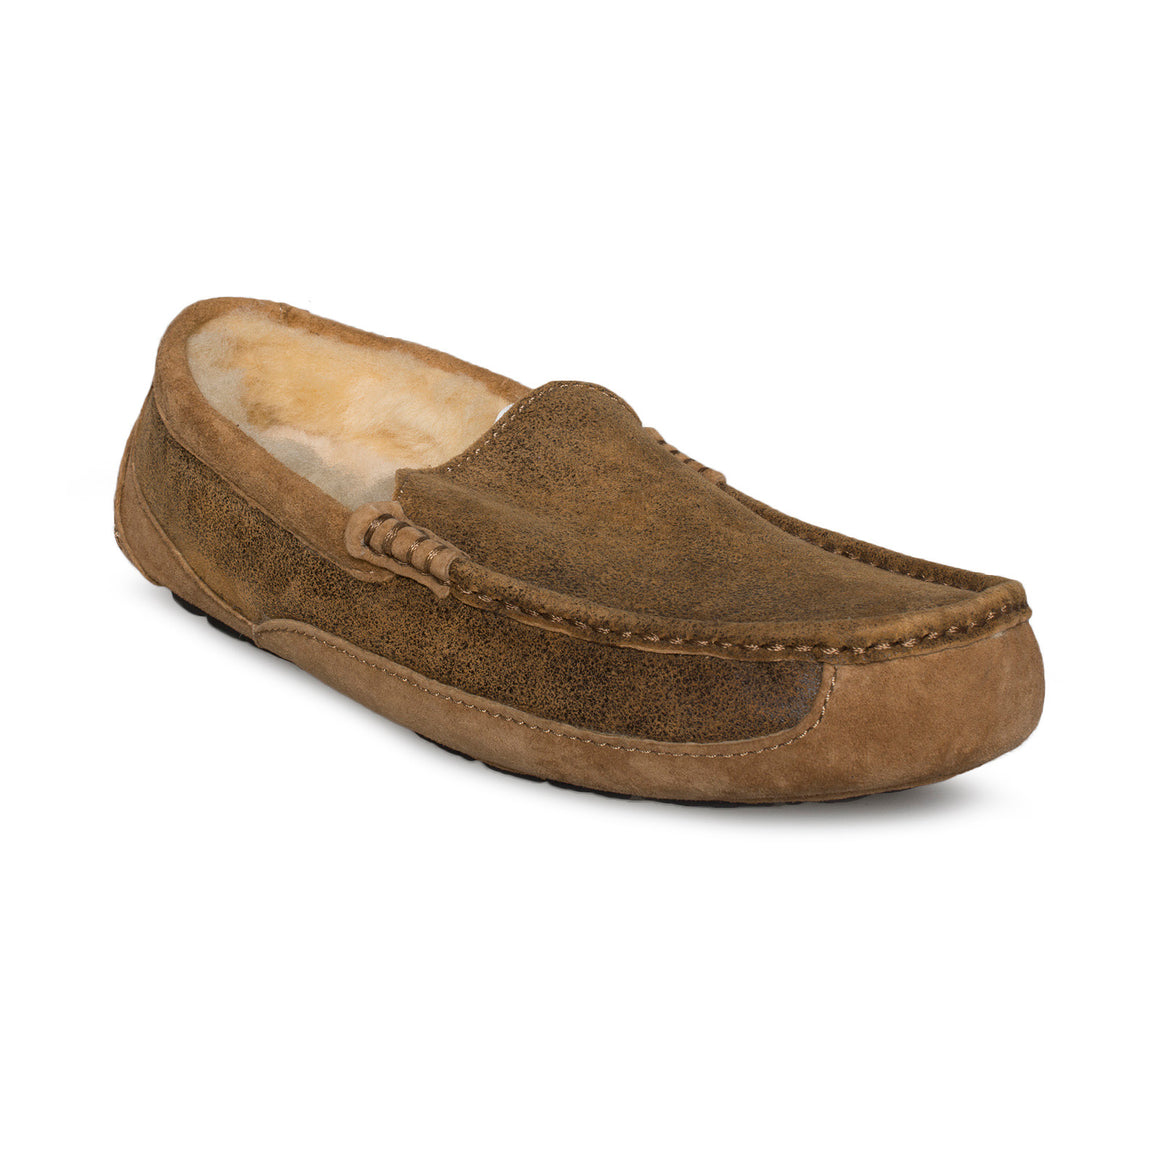 UGG Ascot Bomber Jacket Chestnut Slippers - Men's